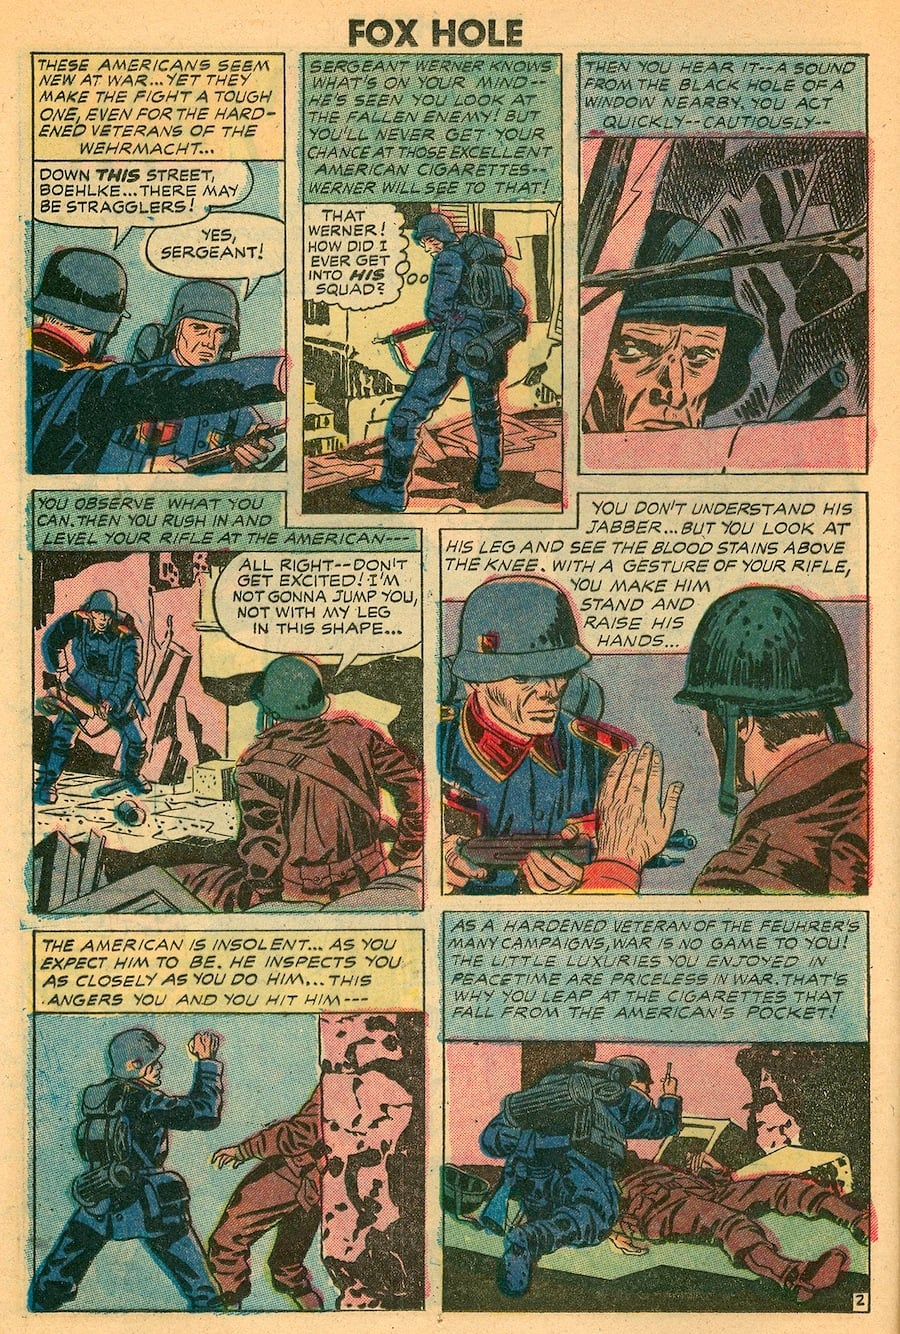 Foxhole #6 golden age war comic page by Jack Kirby